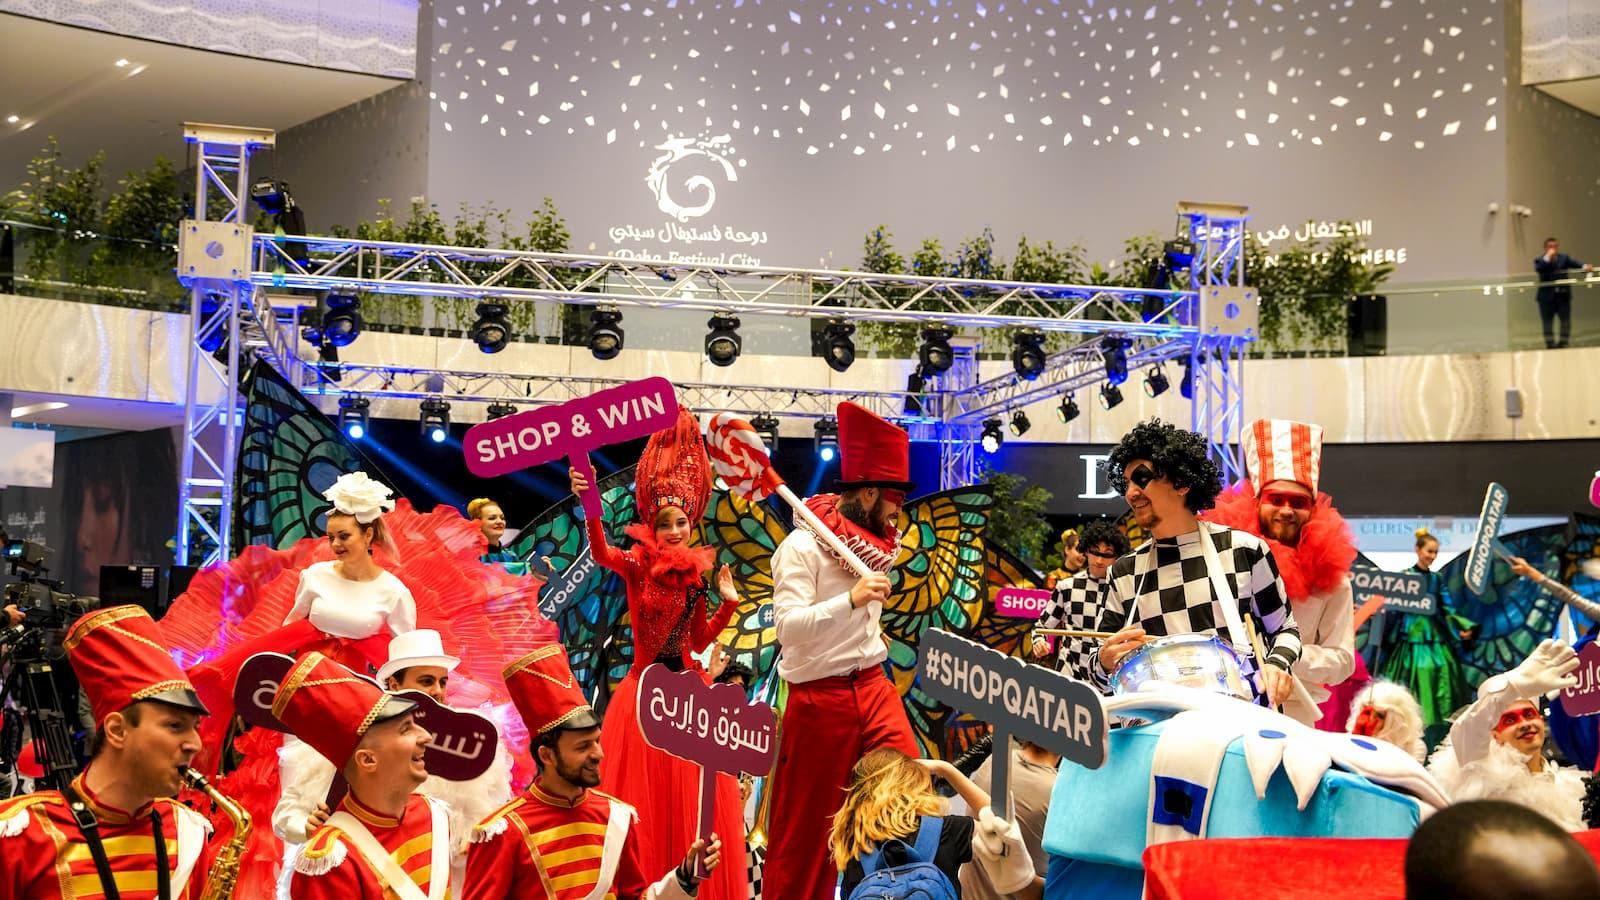 Shop Qatar 2020 edition offers discounts, prizes, fashion and entertainment events